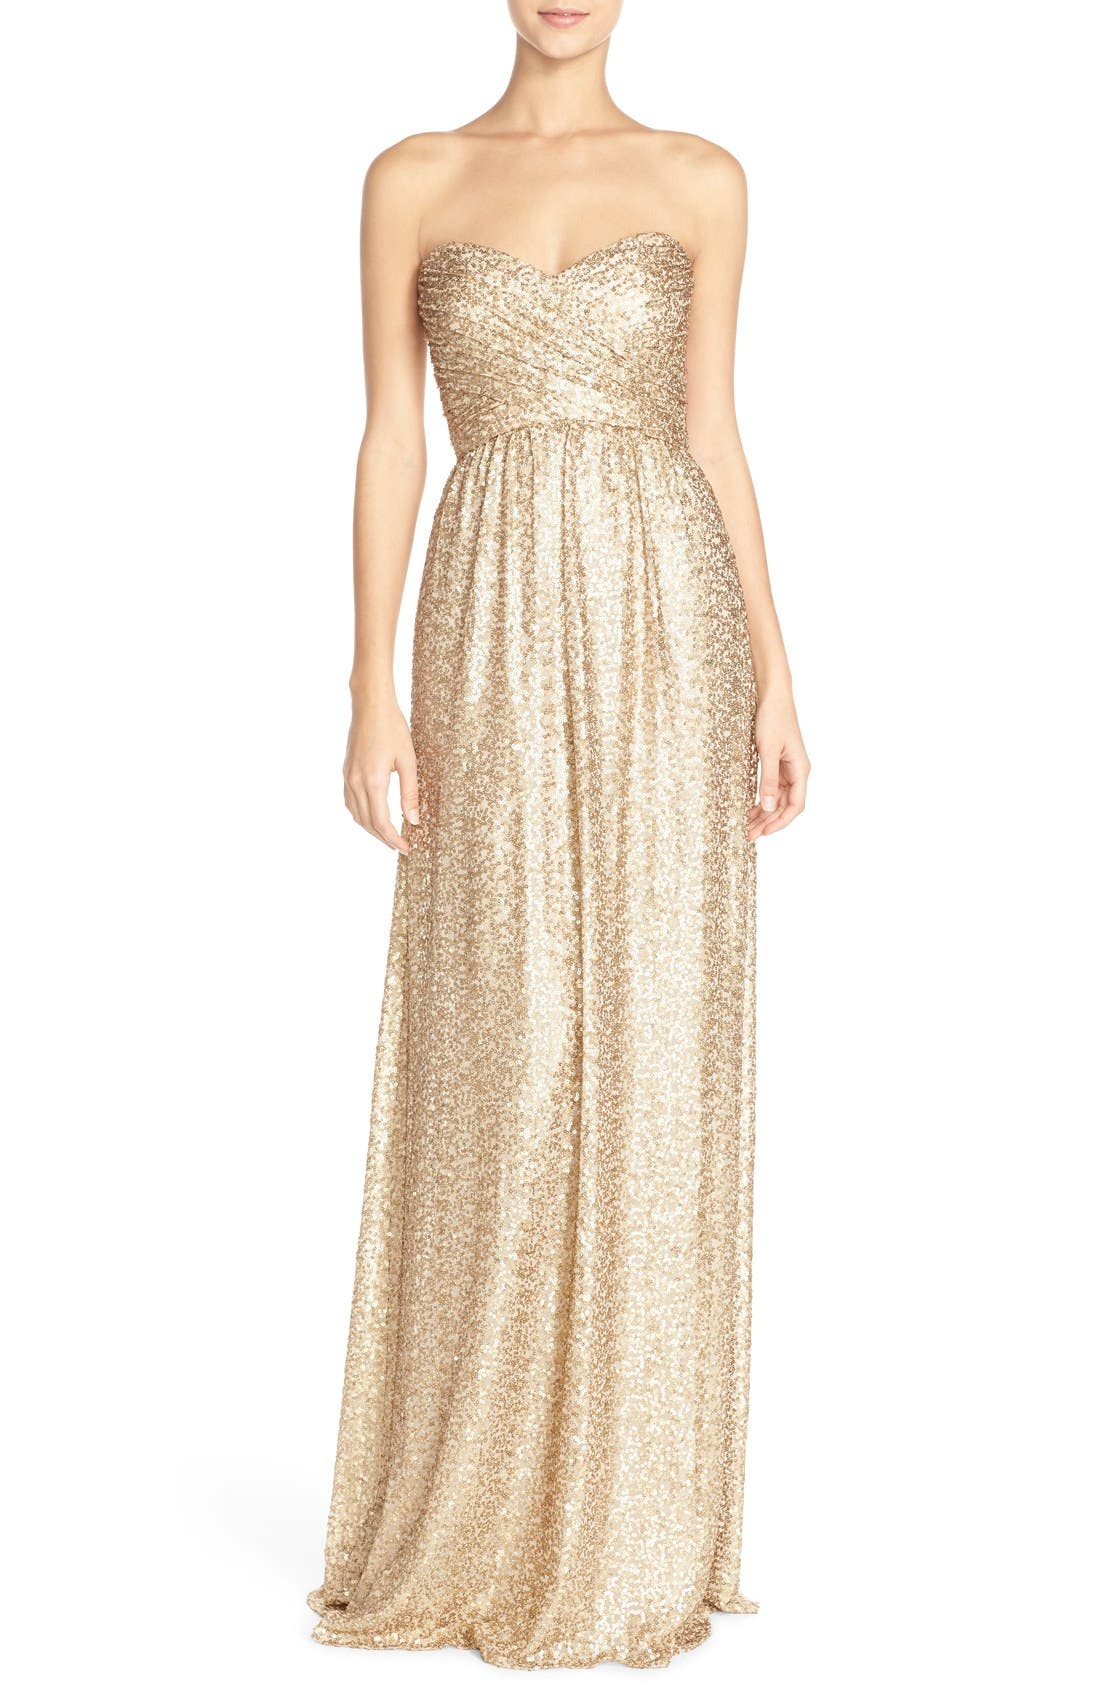 'London' Sequin Tulle Strapless Column Gown,                             Main thumbnail 1, color,                             710